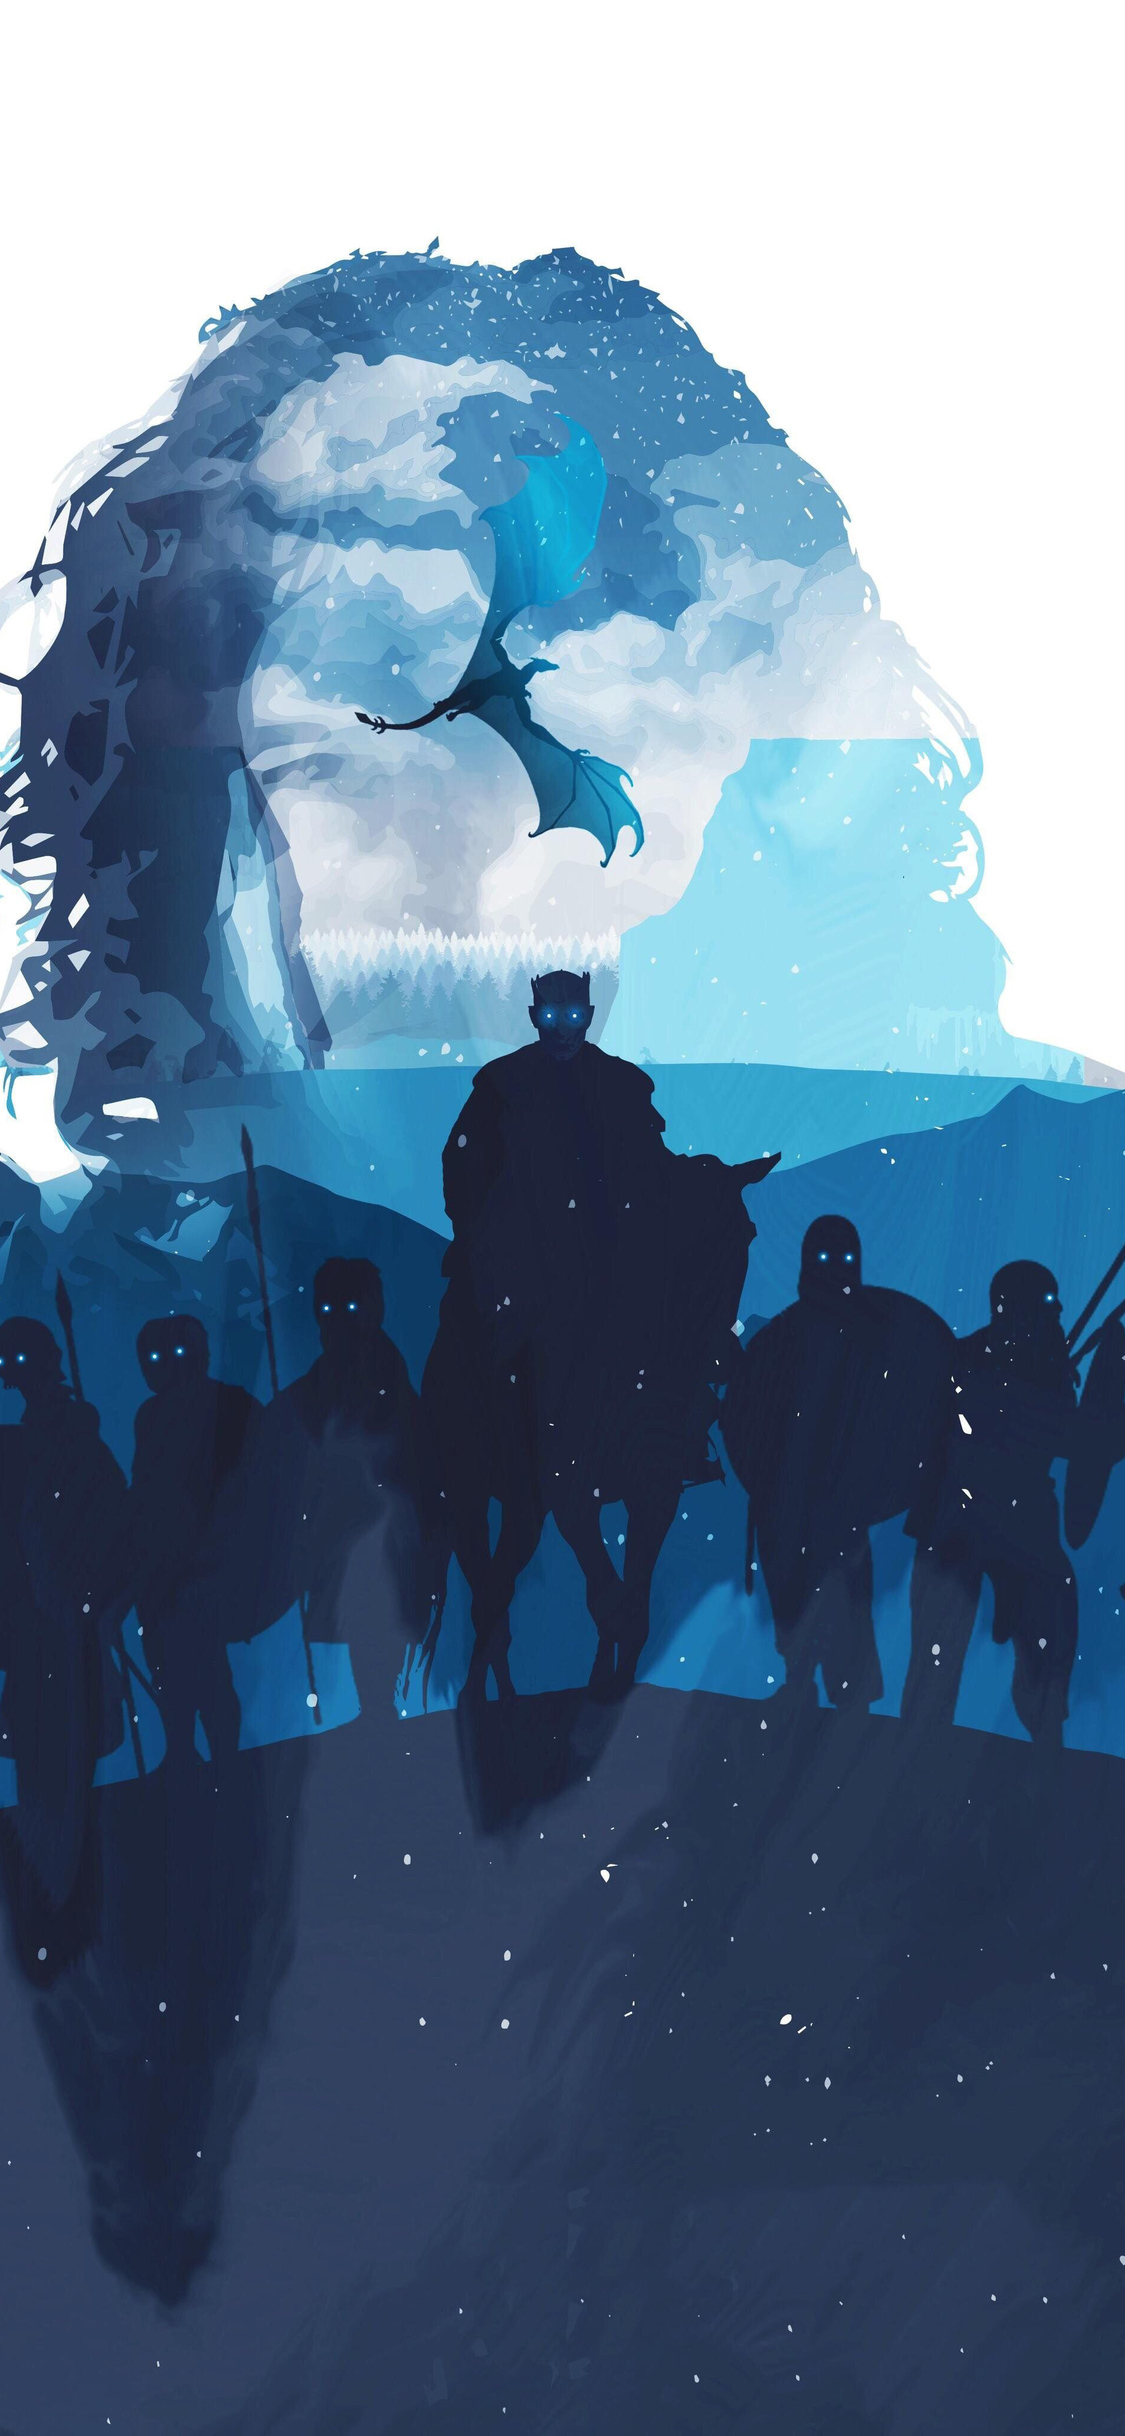 winter-is-here- iPhone game of thrones wallpaper